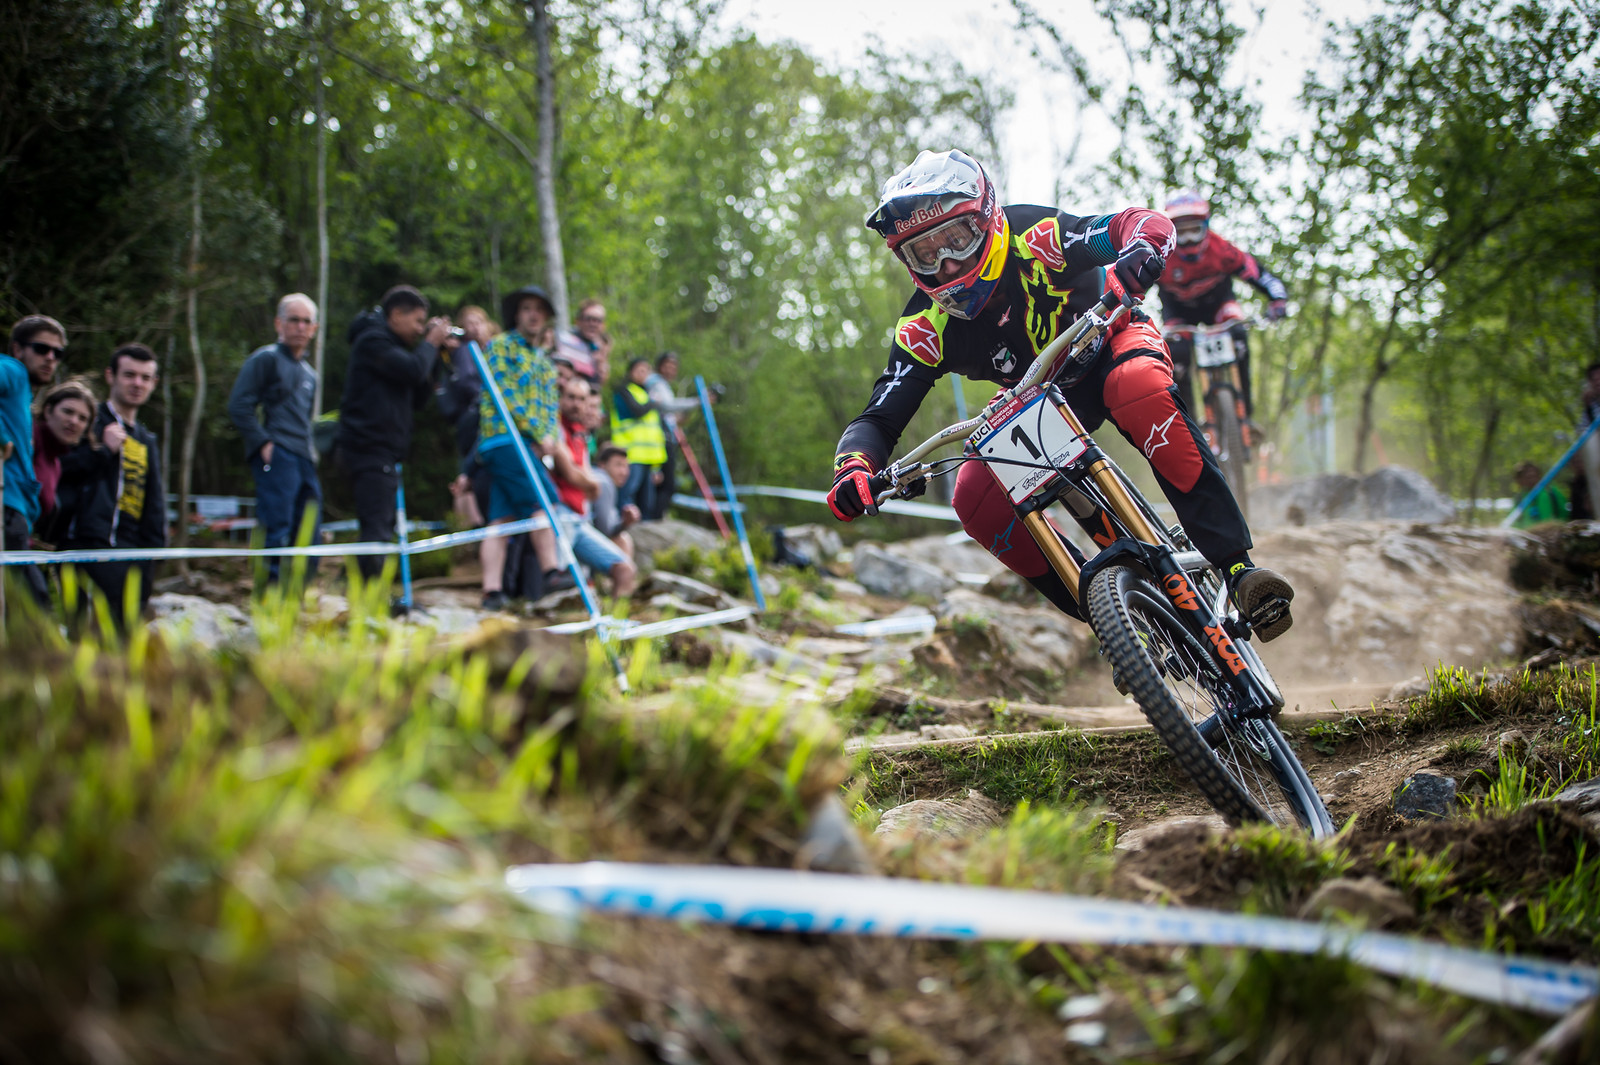 Aaron Gwin, Lourdes Race Morning Practice - iceman2058 - Mountain Biking Pictures - Vital MTB